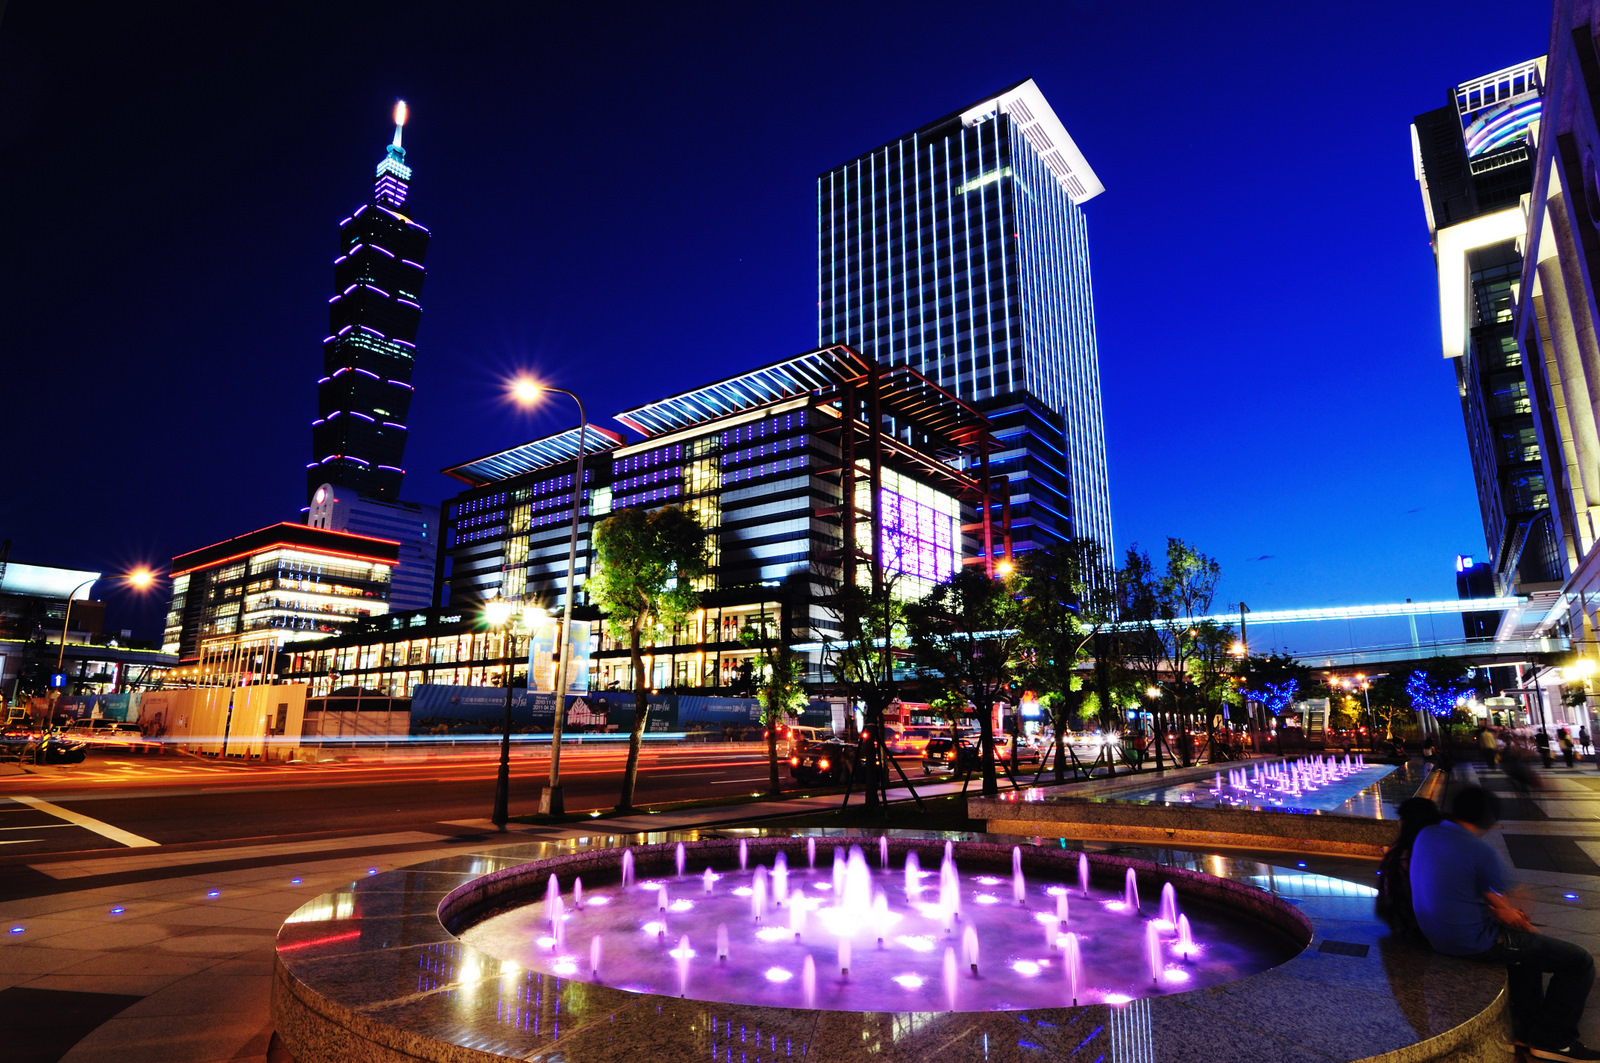 图片来自:http://mropengate.blogspot.my/2015/09/ch1-101-xinyi-commercial-center-taipei.html